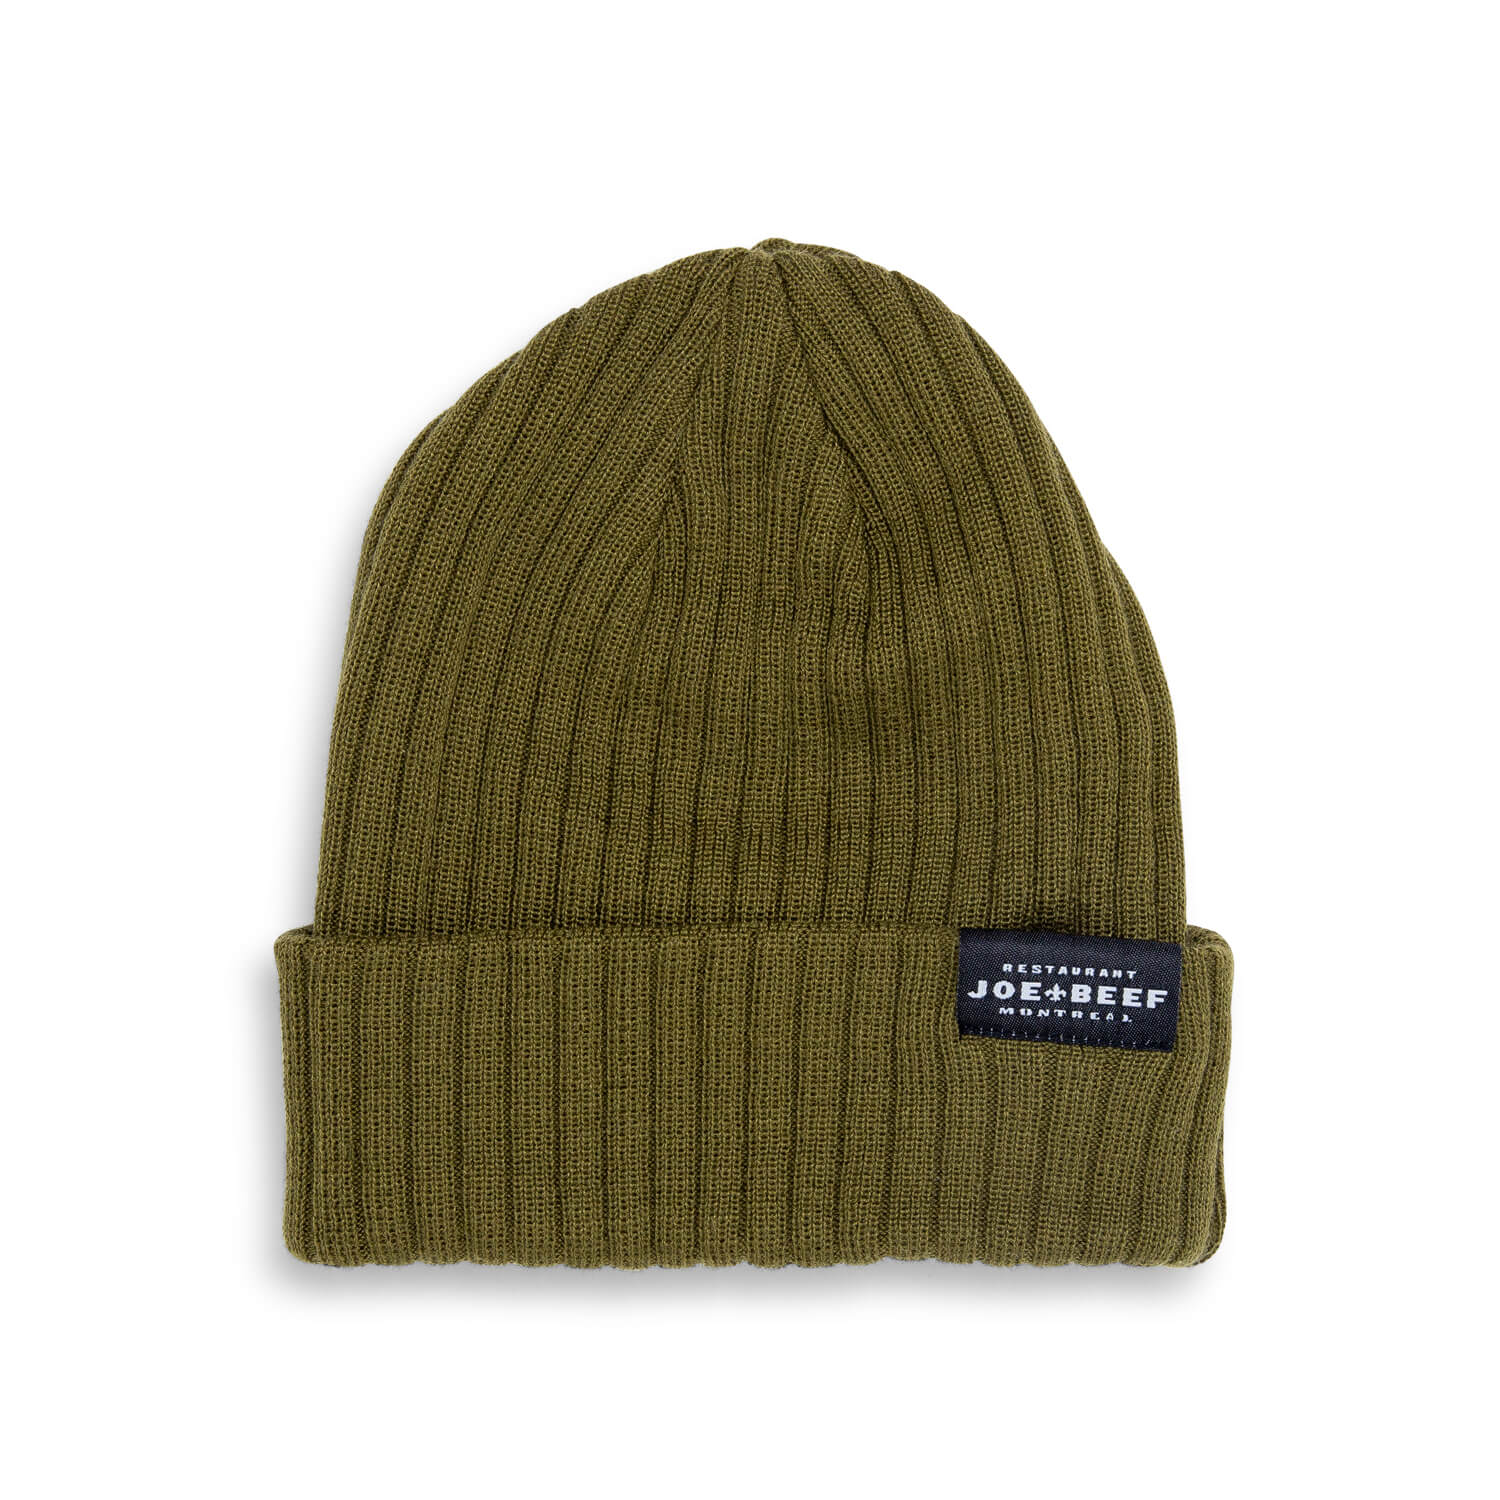 Joe Beef Tuque (Olive)